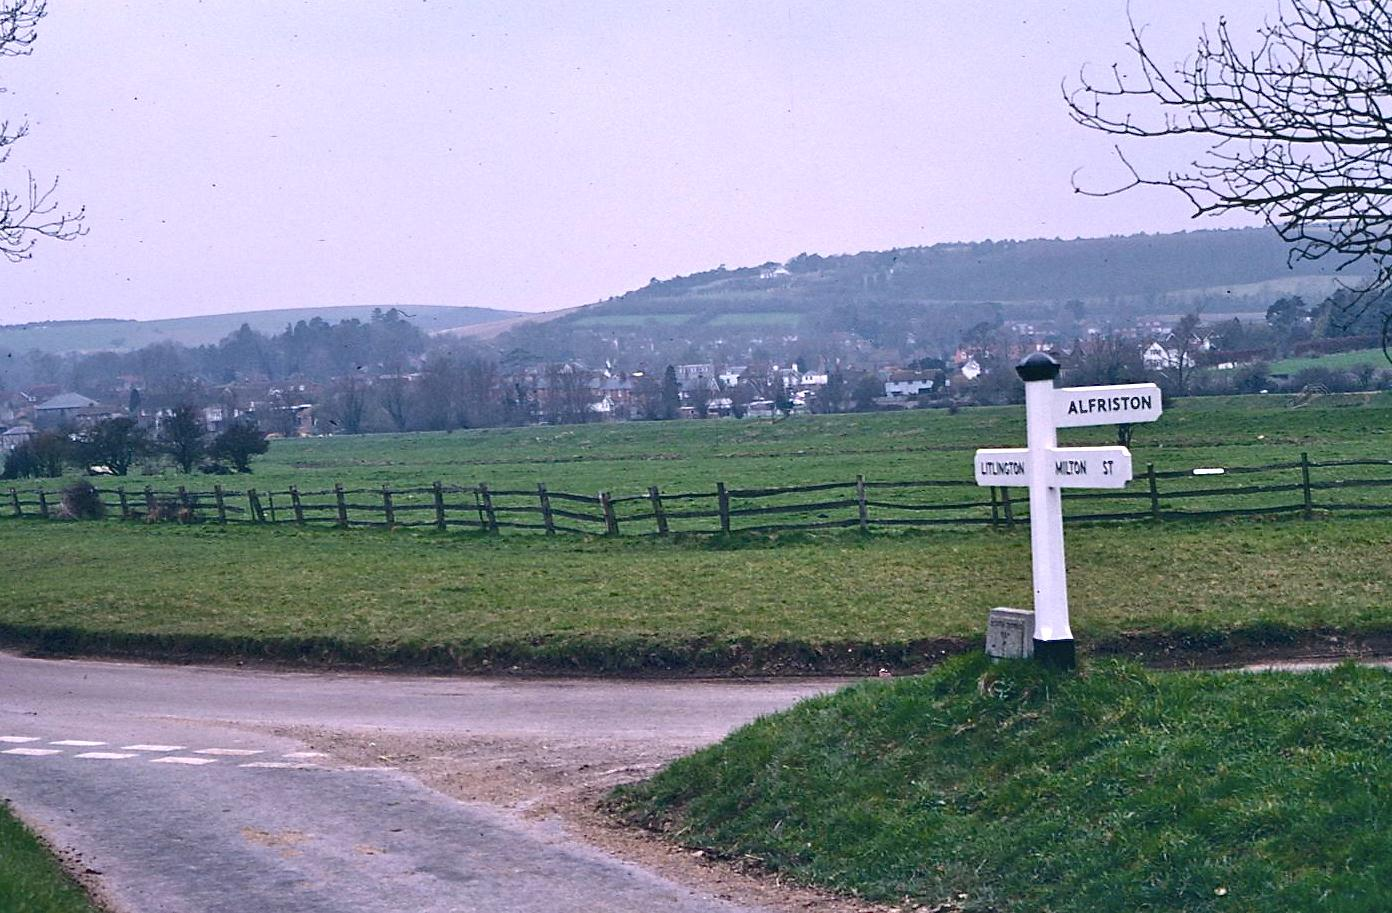 Heading for Alfriston – the second time.  I used a version of this photo as an illustration in A Walker's Alphabet.